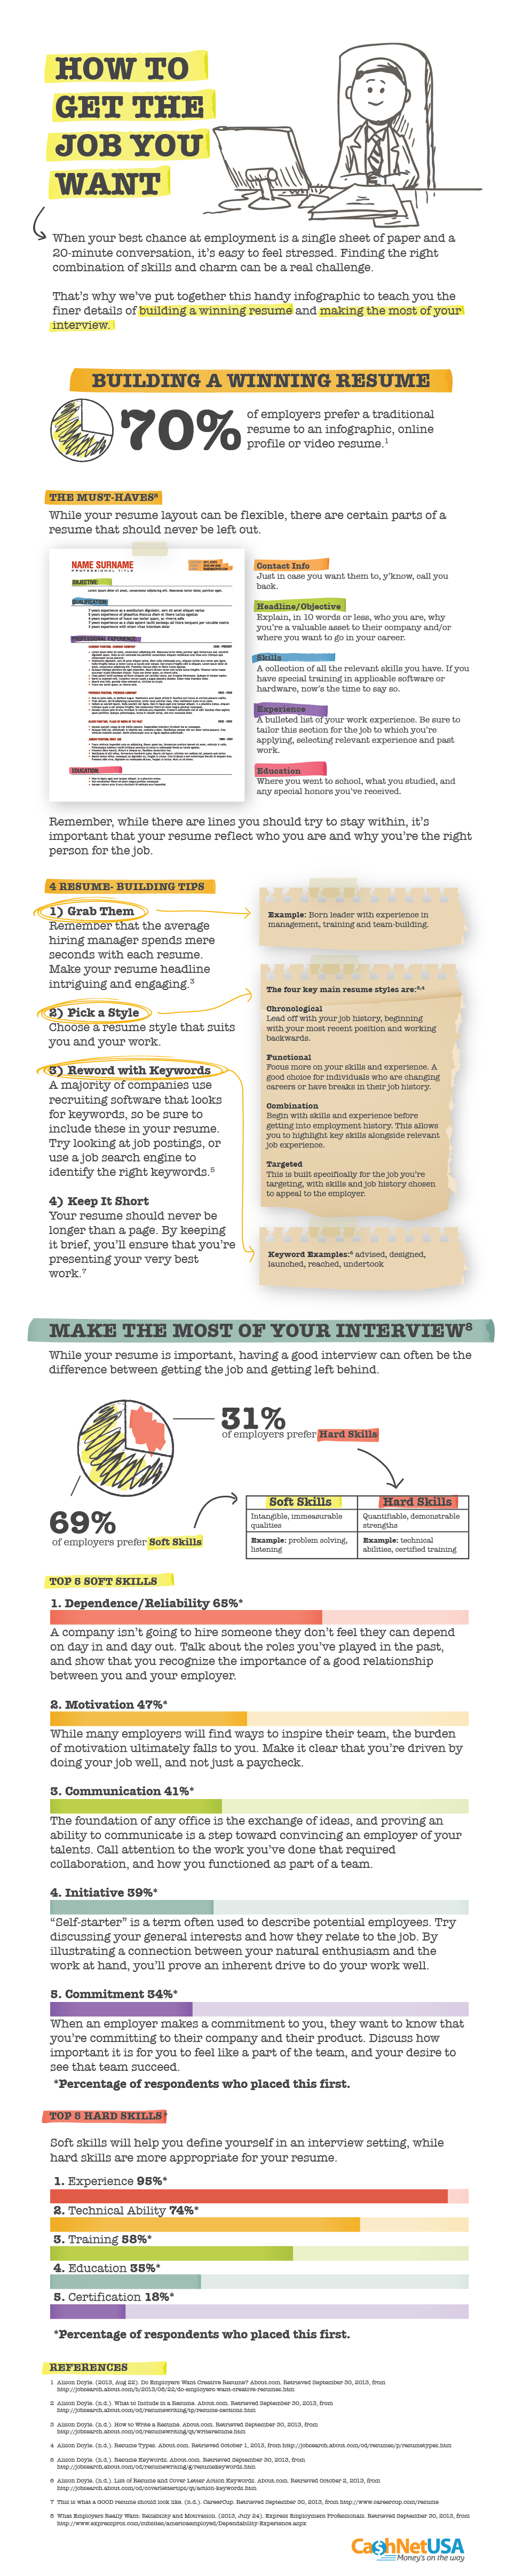 How to Get the Job You Want - #Infographic